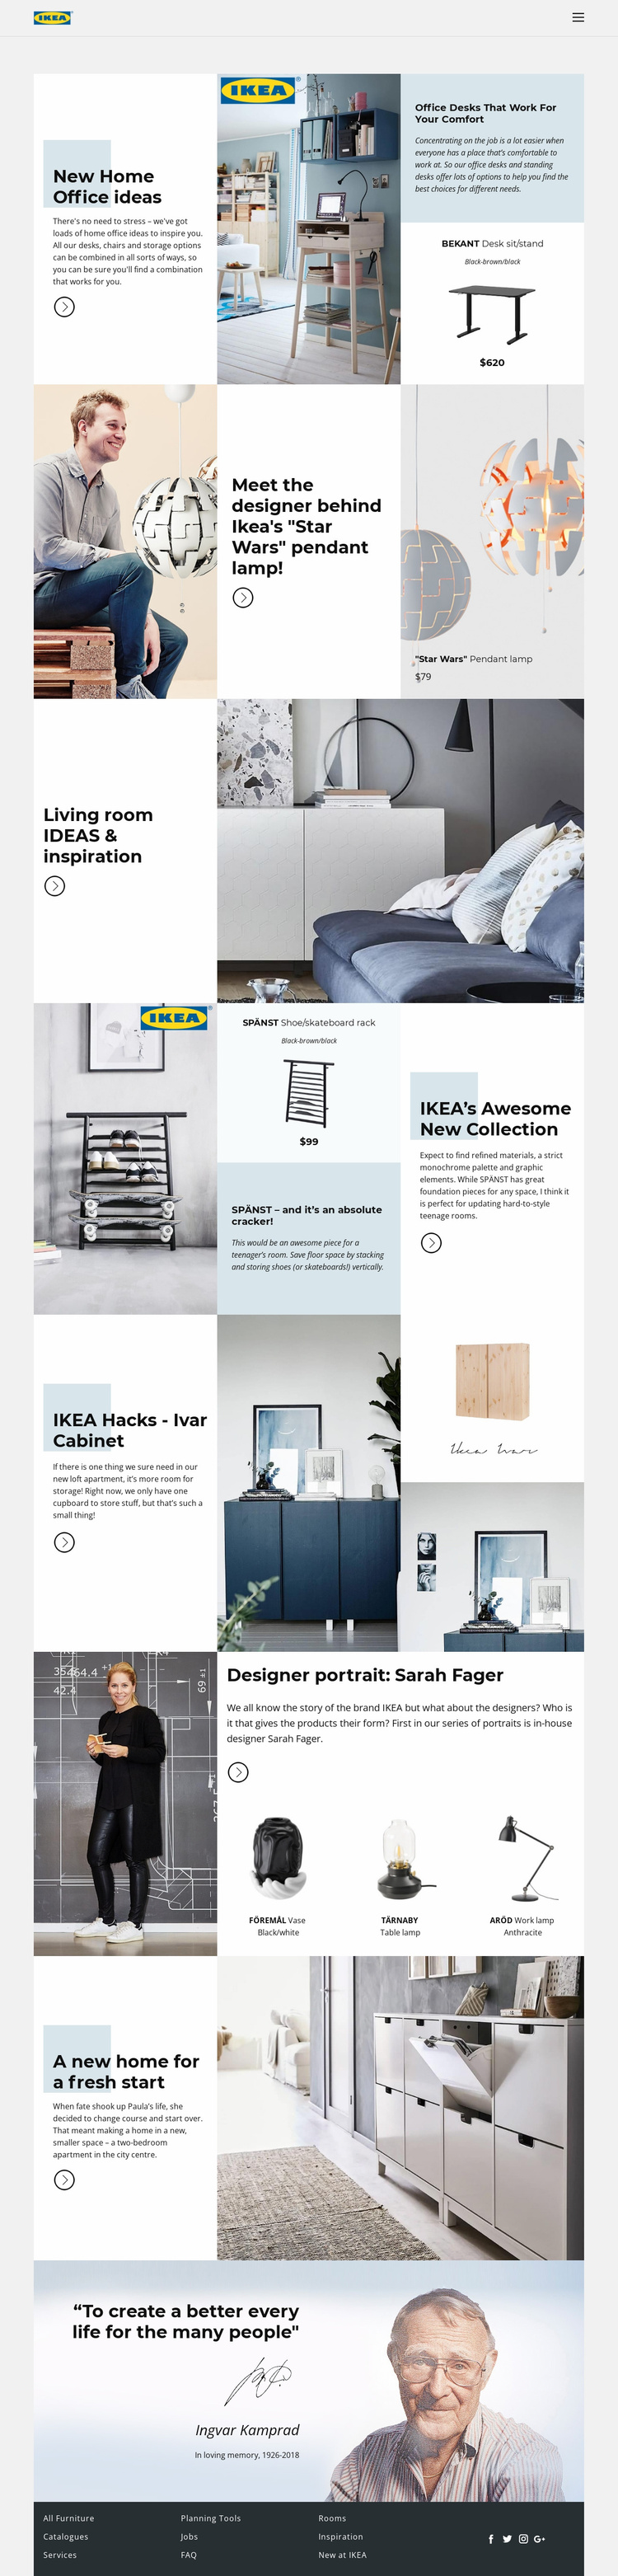 Inspiration from IKEA Website Template